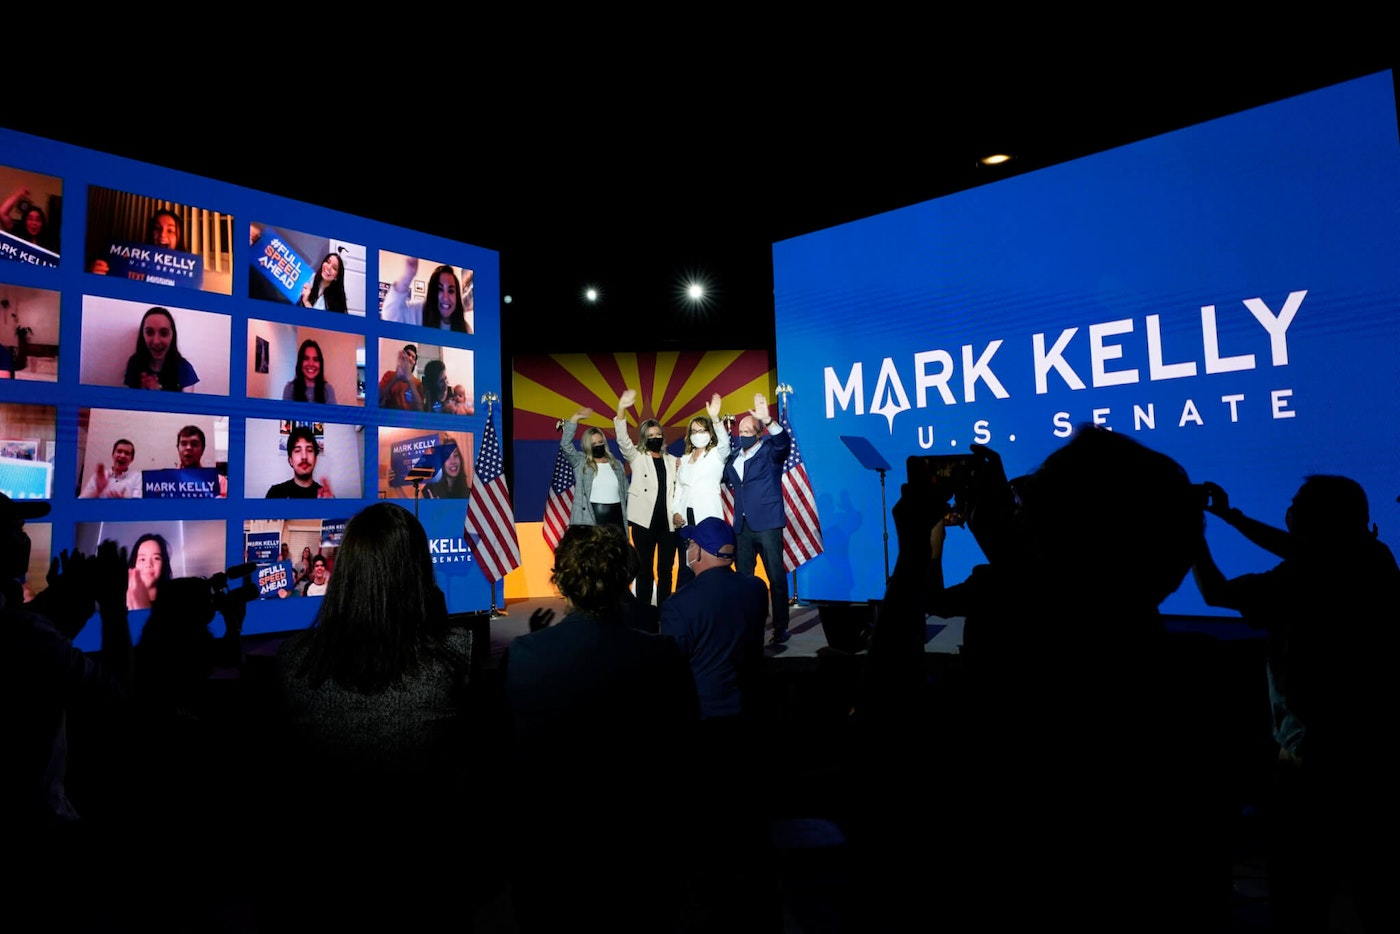 Mark Kelly, right, Arizona Democratic candidate for U.S. Senate, waves to supporters along with his wife Gabrielle Giffords, second from right, and daughters, Claire Kelly, left, and Claudia Kelly, second from left, during an election night event Tuesday, Nov. 3, 2020 in Tucson, Ariz. (AP Photo/Ross D. Franklin)